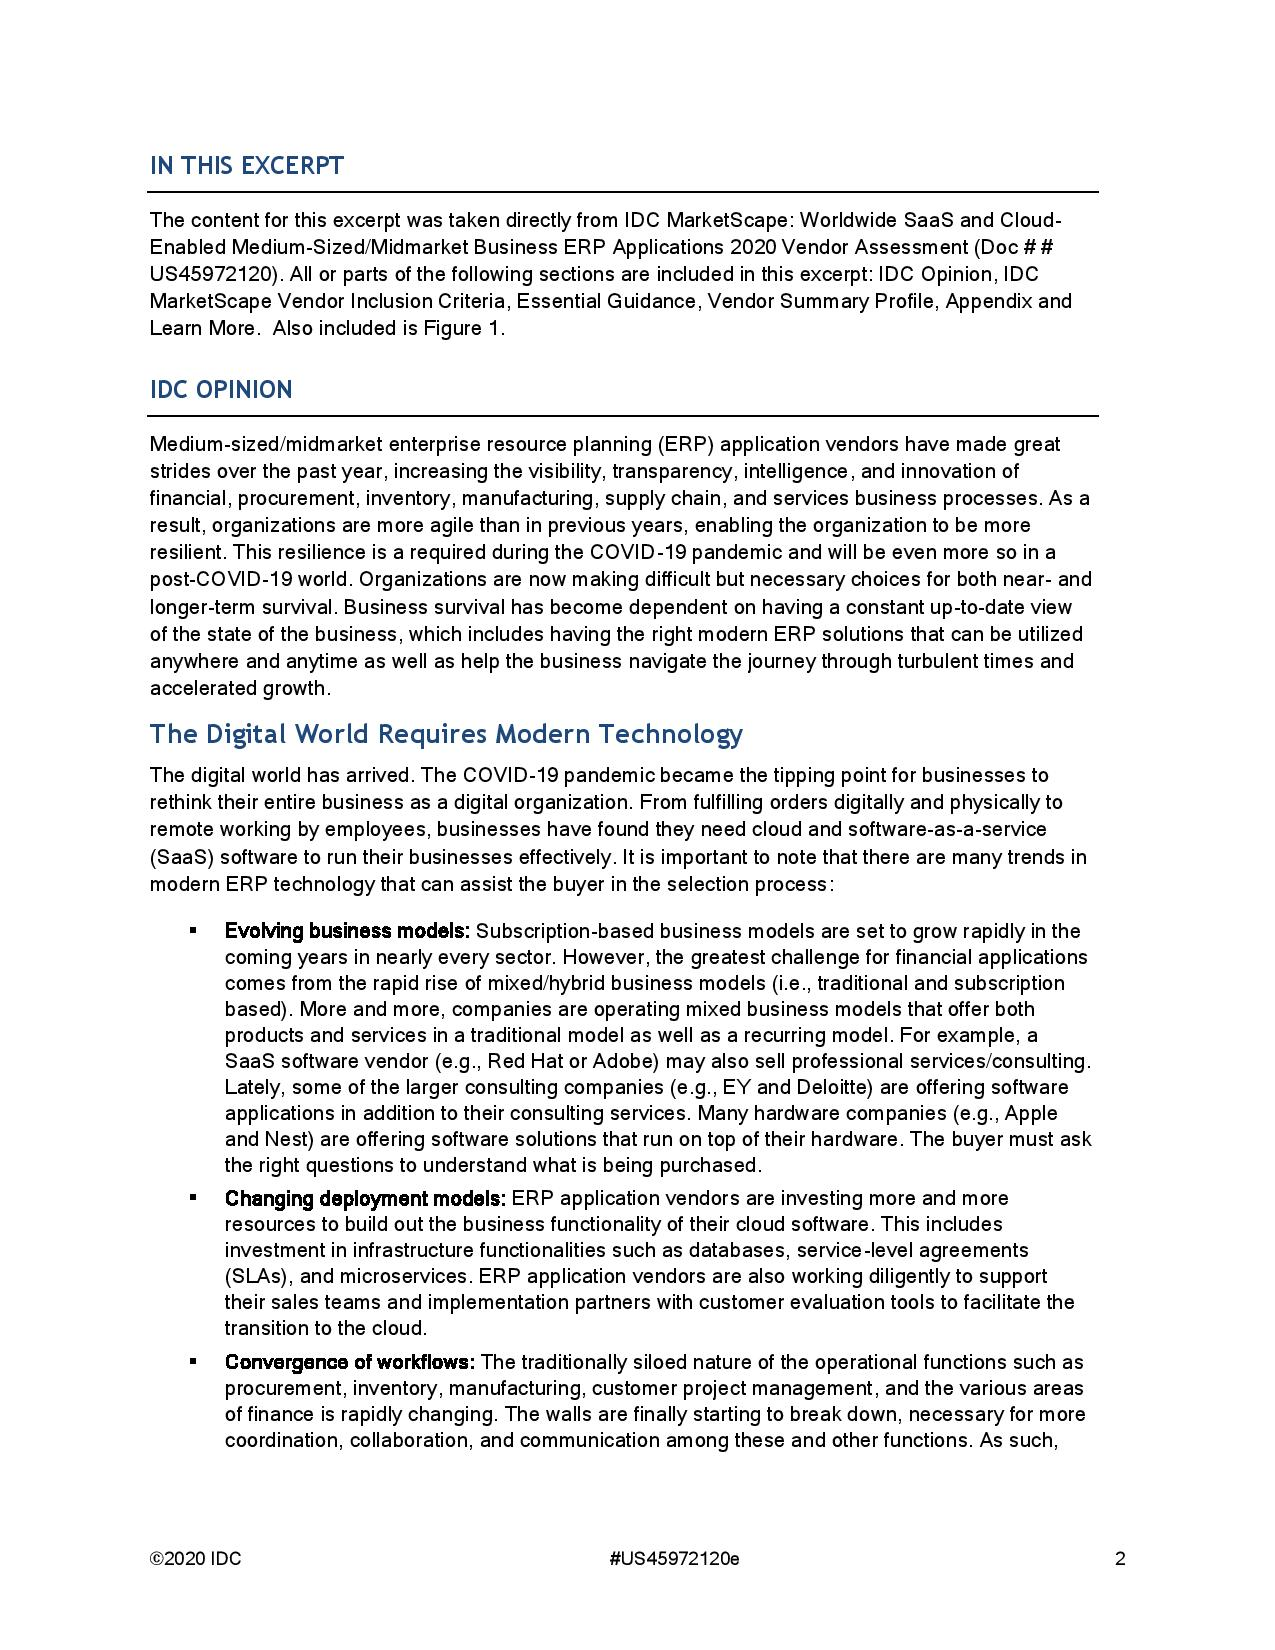 ERP Vendors Assessed: How Modern Solutions Can Enable the Digital Enterprise, page 0